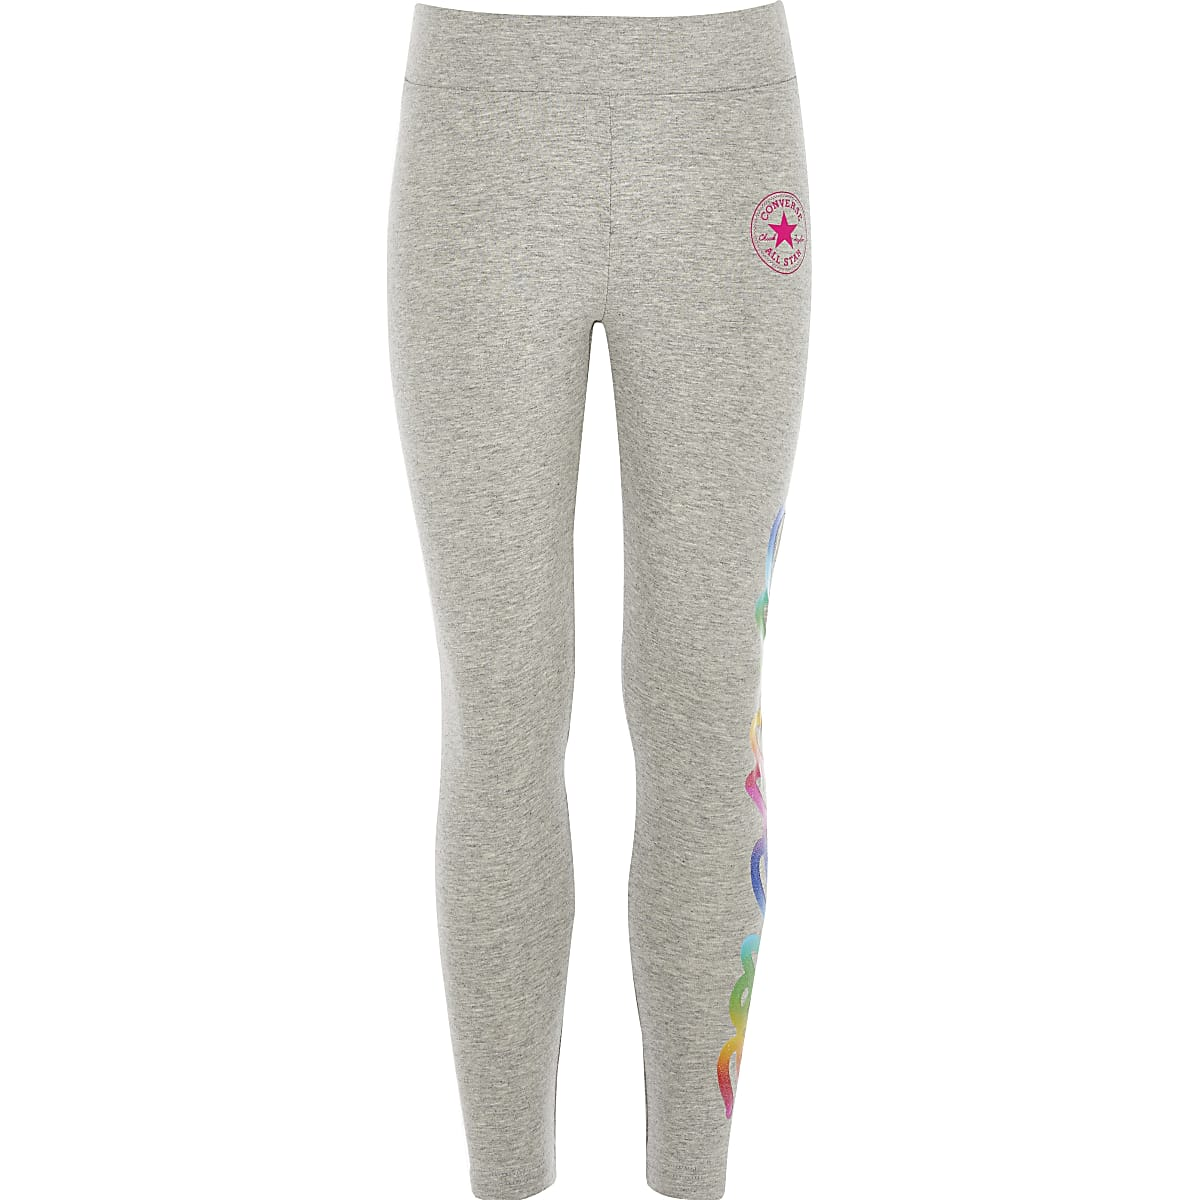 Girls grey Converse logo leggings